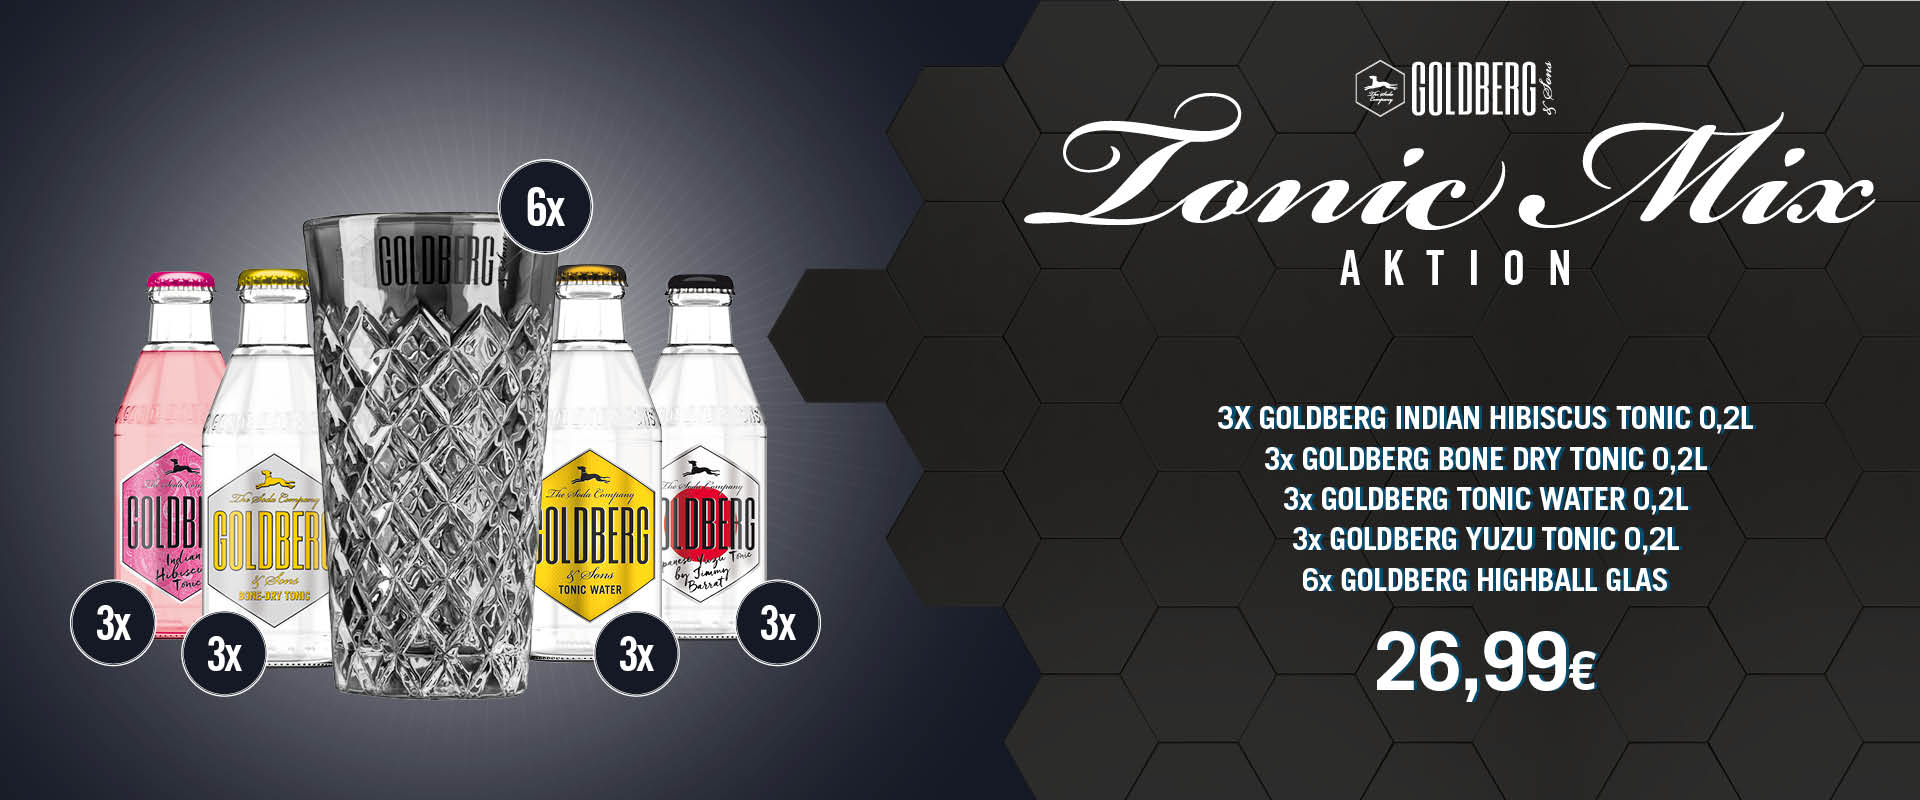 Goldberg Tonic Mix Aktion